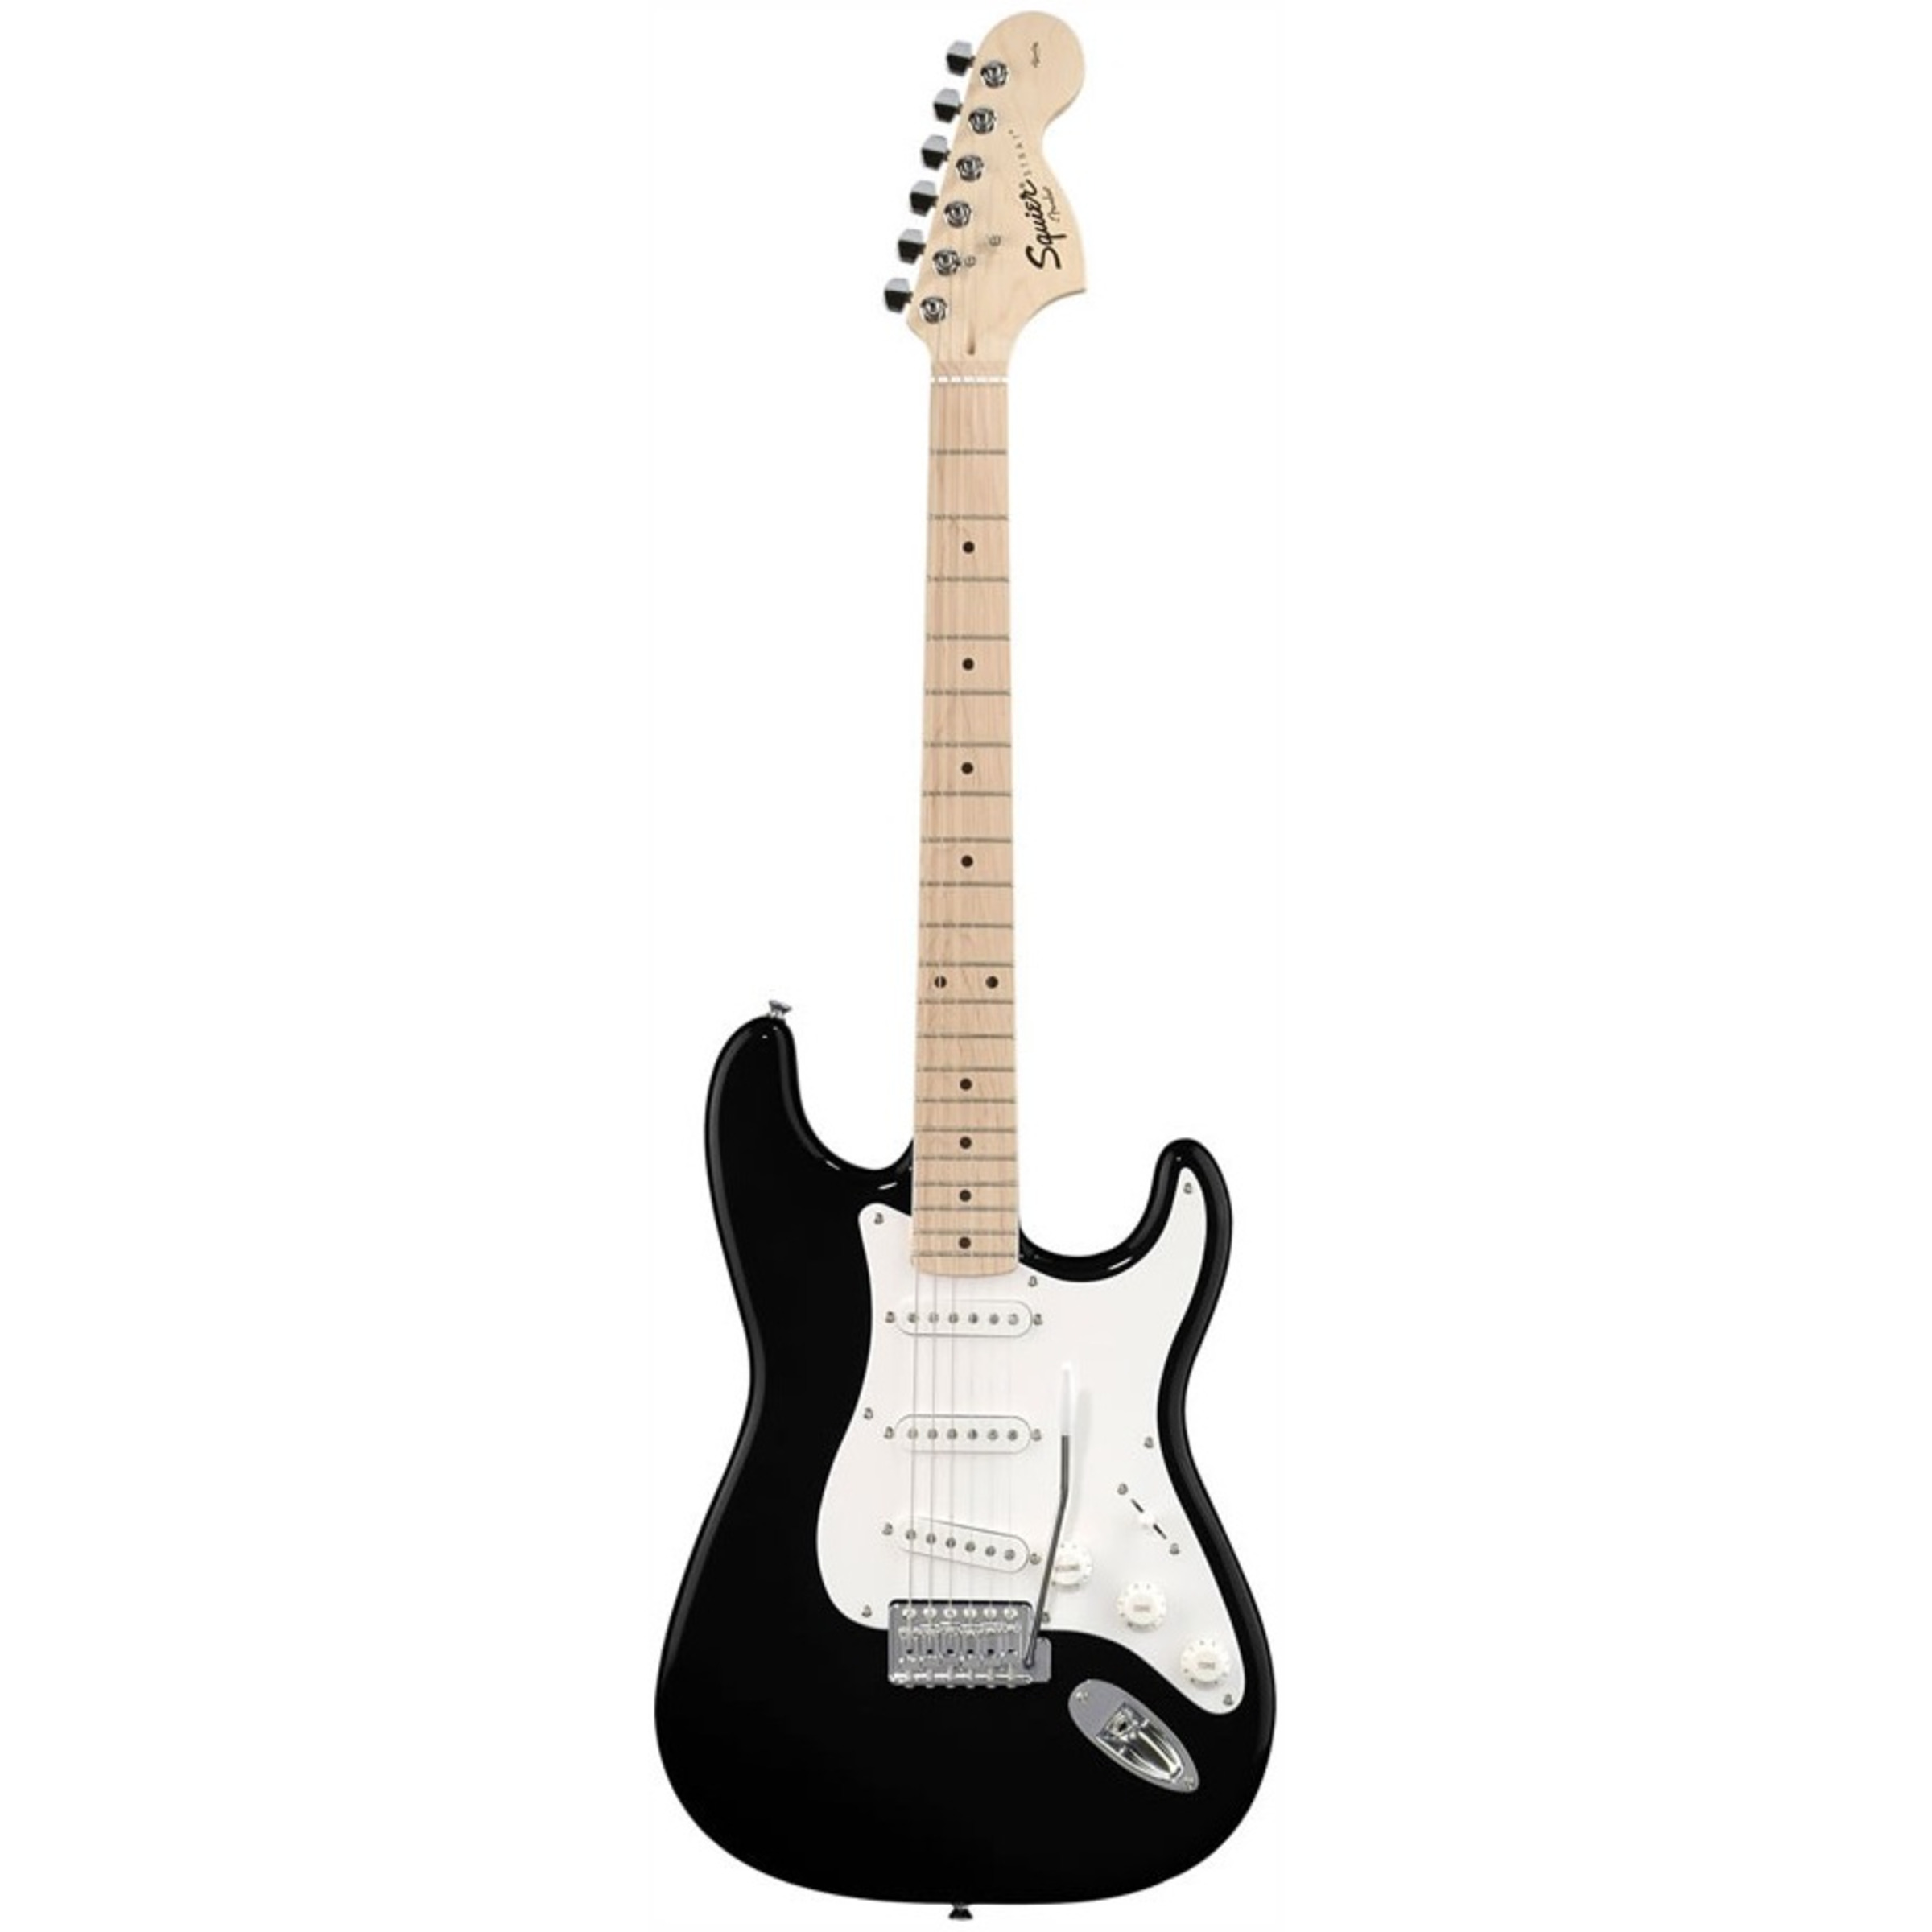 Squier Affinity Strat Electric Guitar, Maple F/board - GigGear